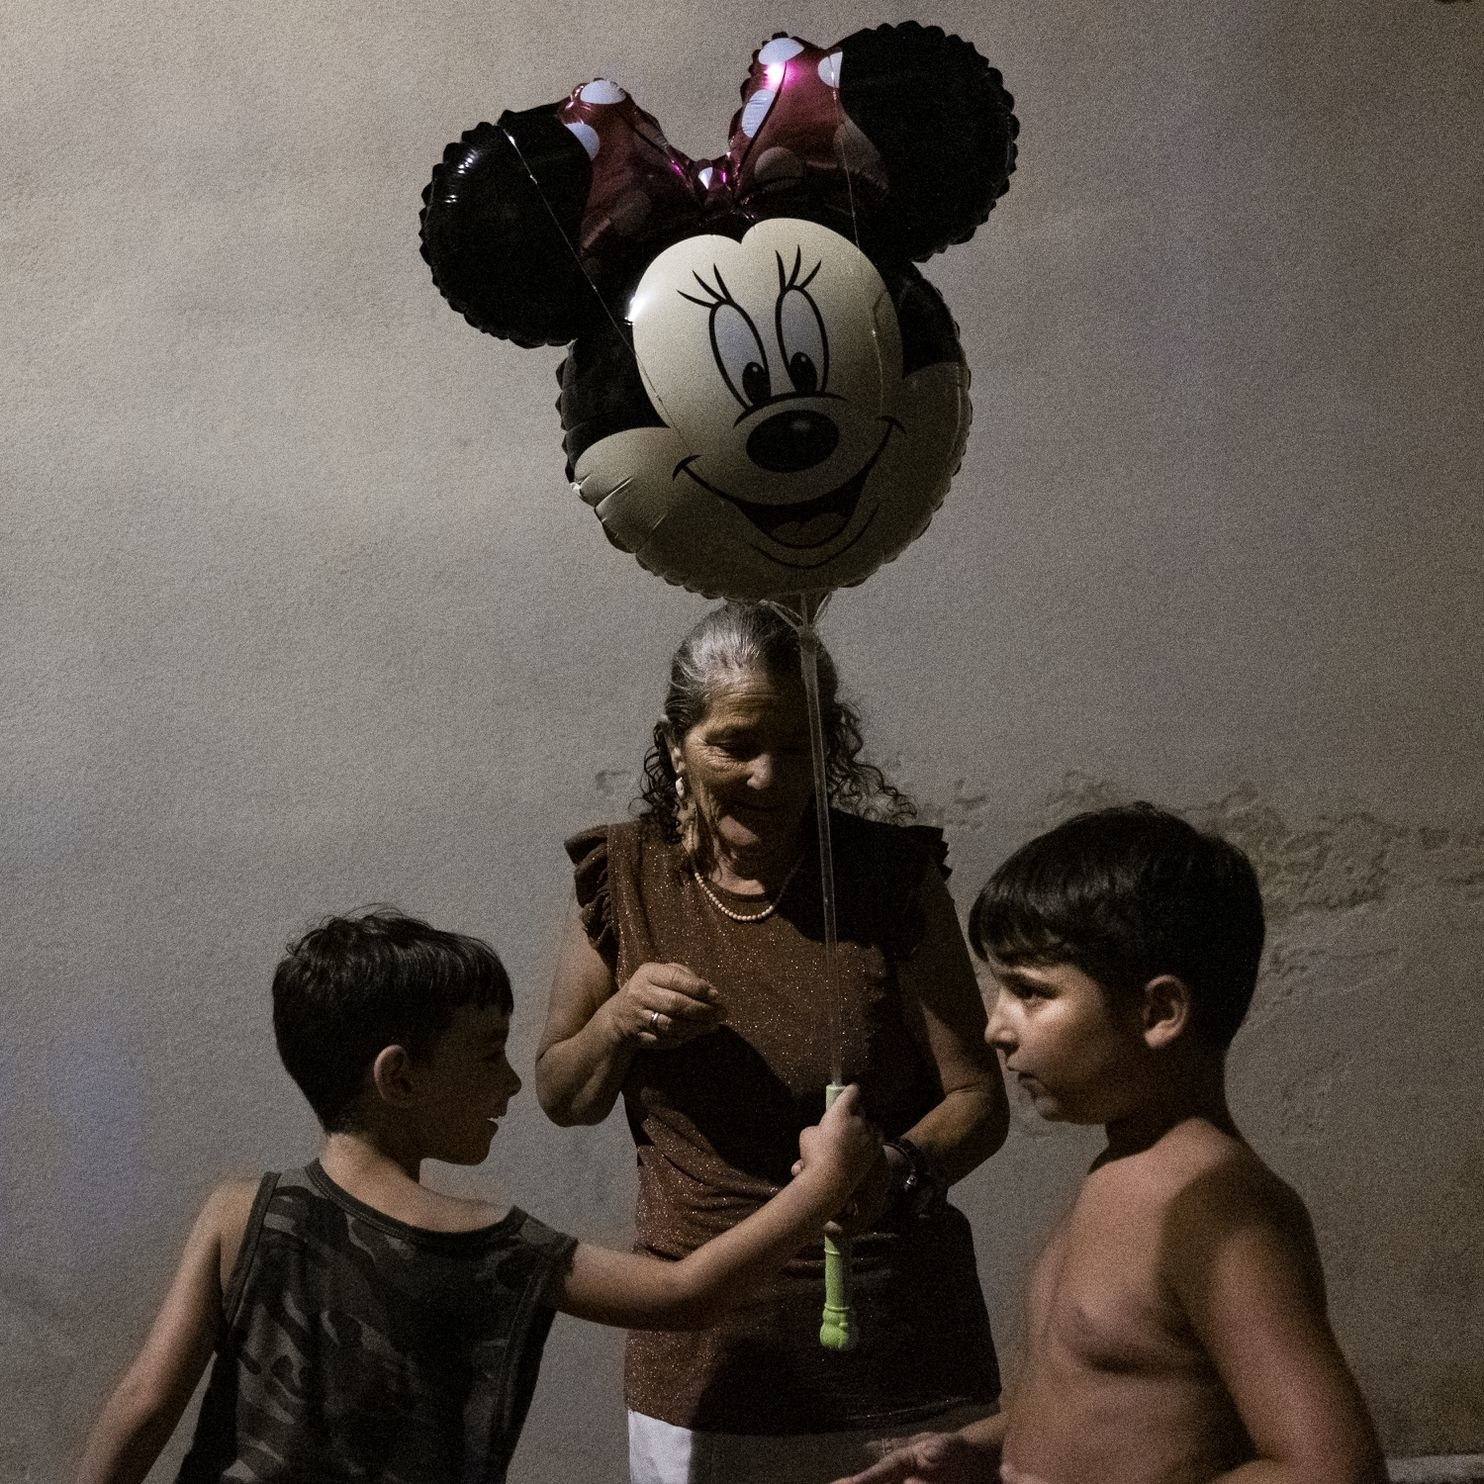 Two young boys play in front of an older Italian woman holding a Minnie Mouse balloon